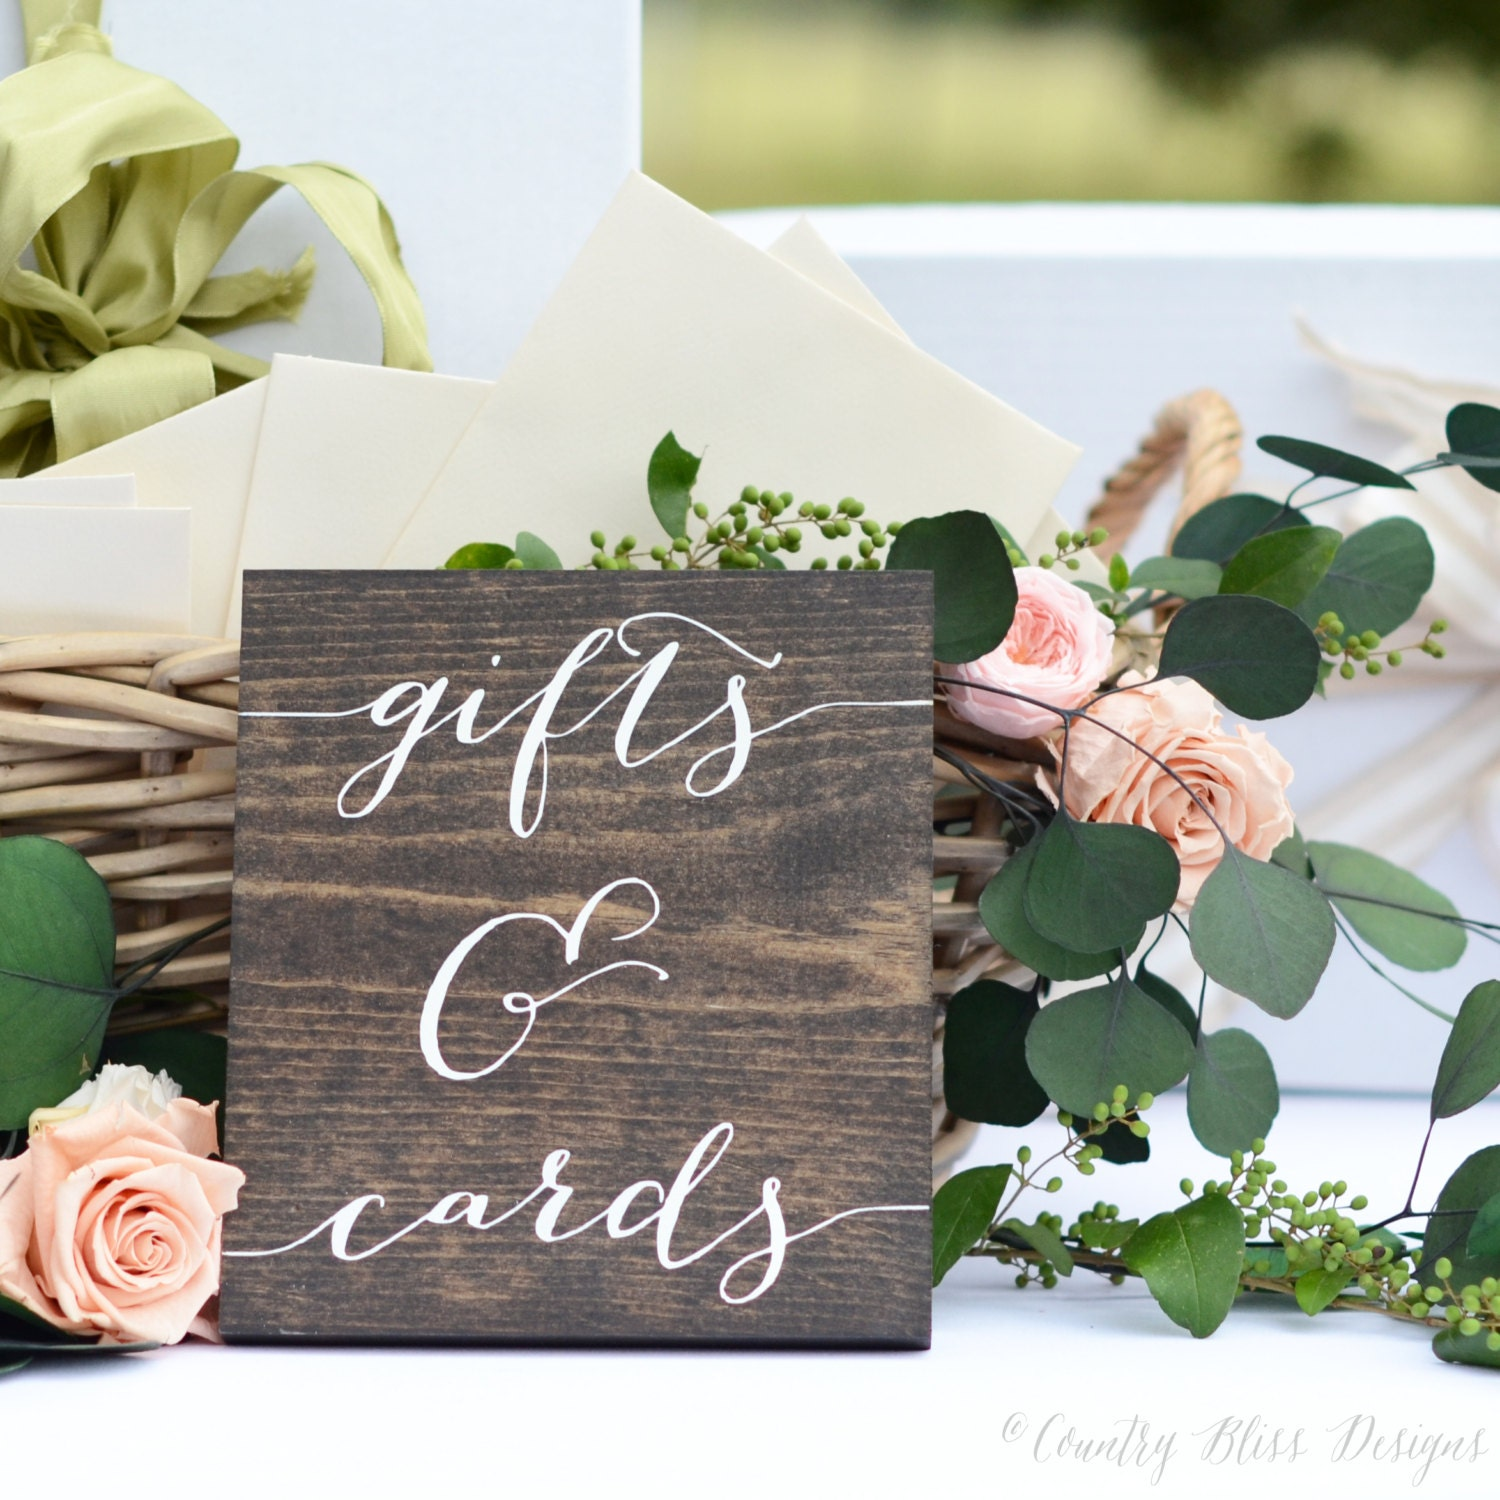 Wedding Card Table Ideas: Gifts And Cards Sign Wedding Gift Table By Countryblissdesigns